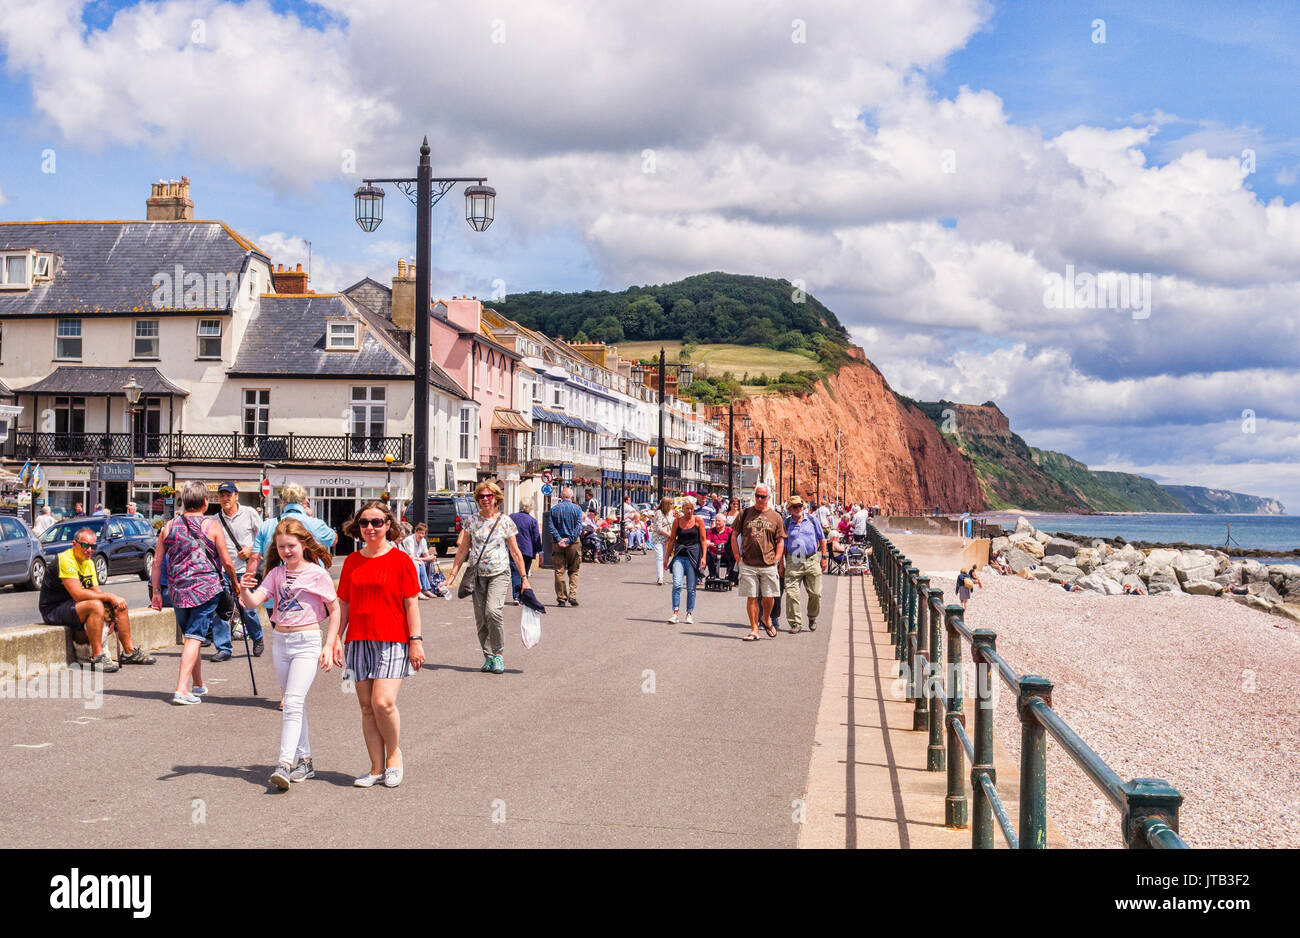 3 July 2017: Sidmouth, Dorset, England, UK - Visitors strolling on the promenade on a sunny summer day with blue sky and huge cumulus clouds. - Stock Image